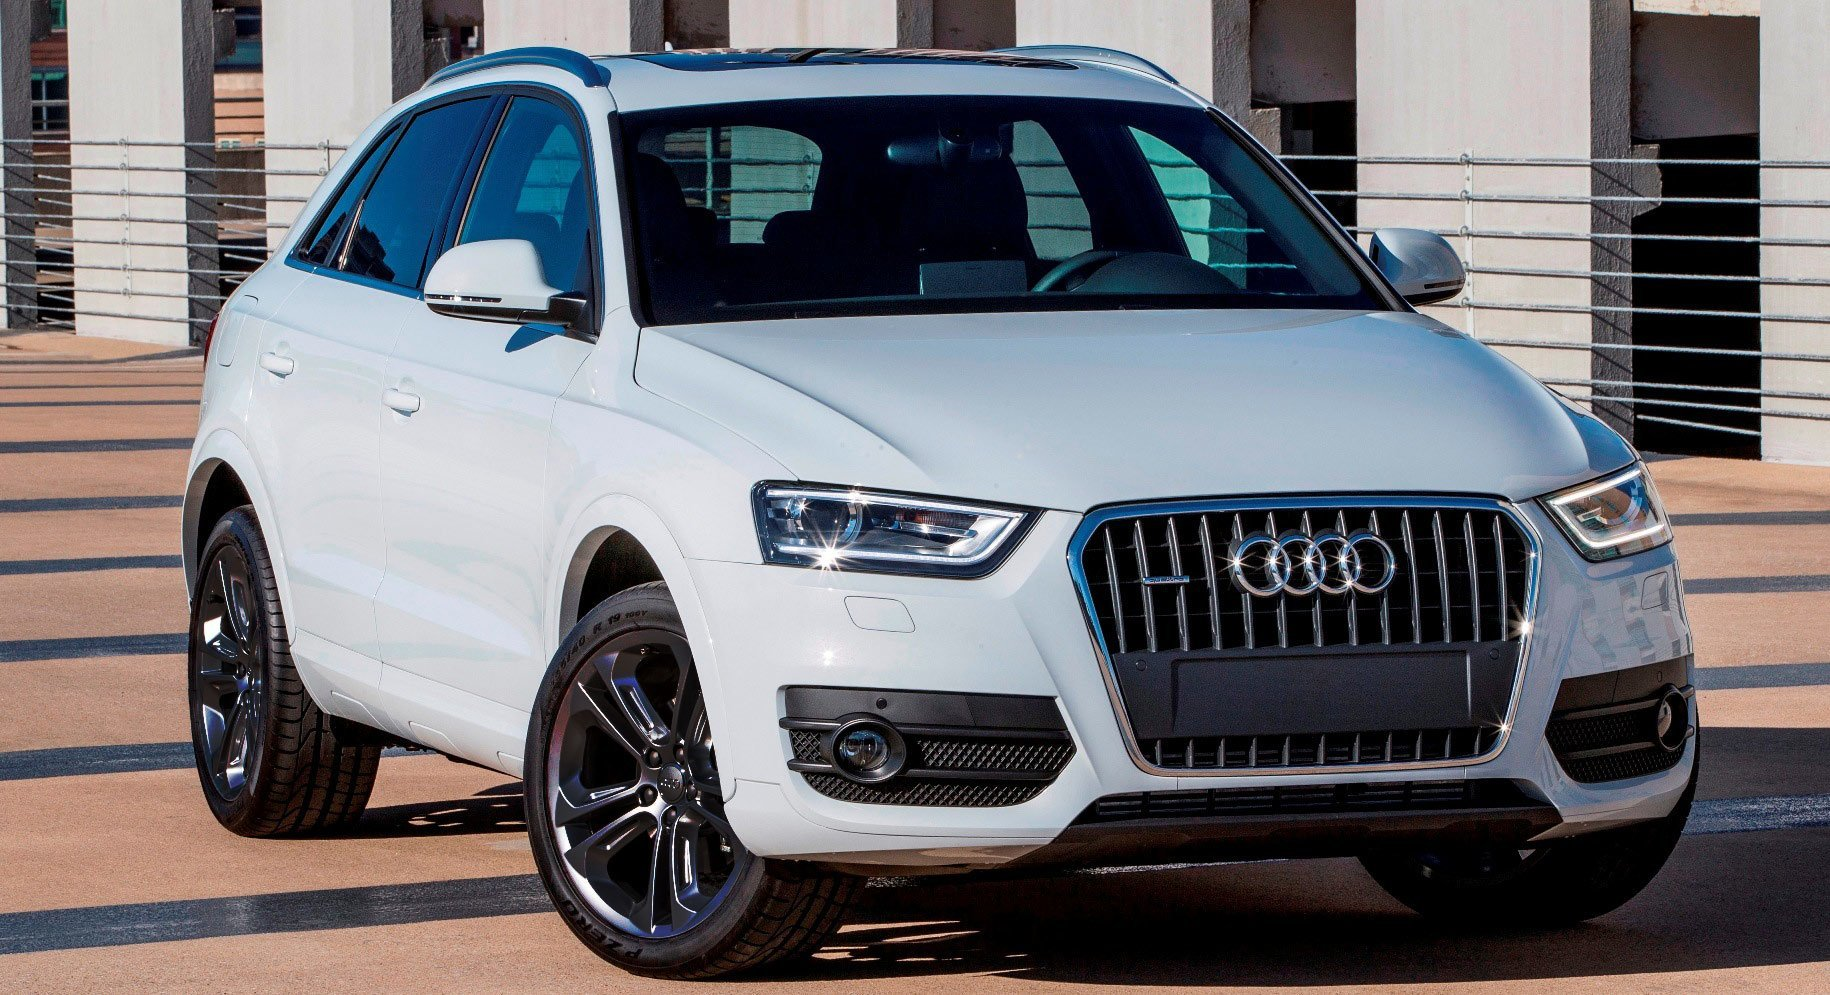 part two: 2016 audi s q3 rendering - future 4.9-second sport compact